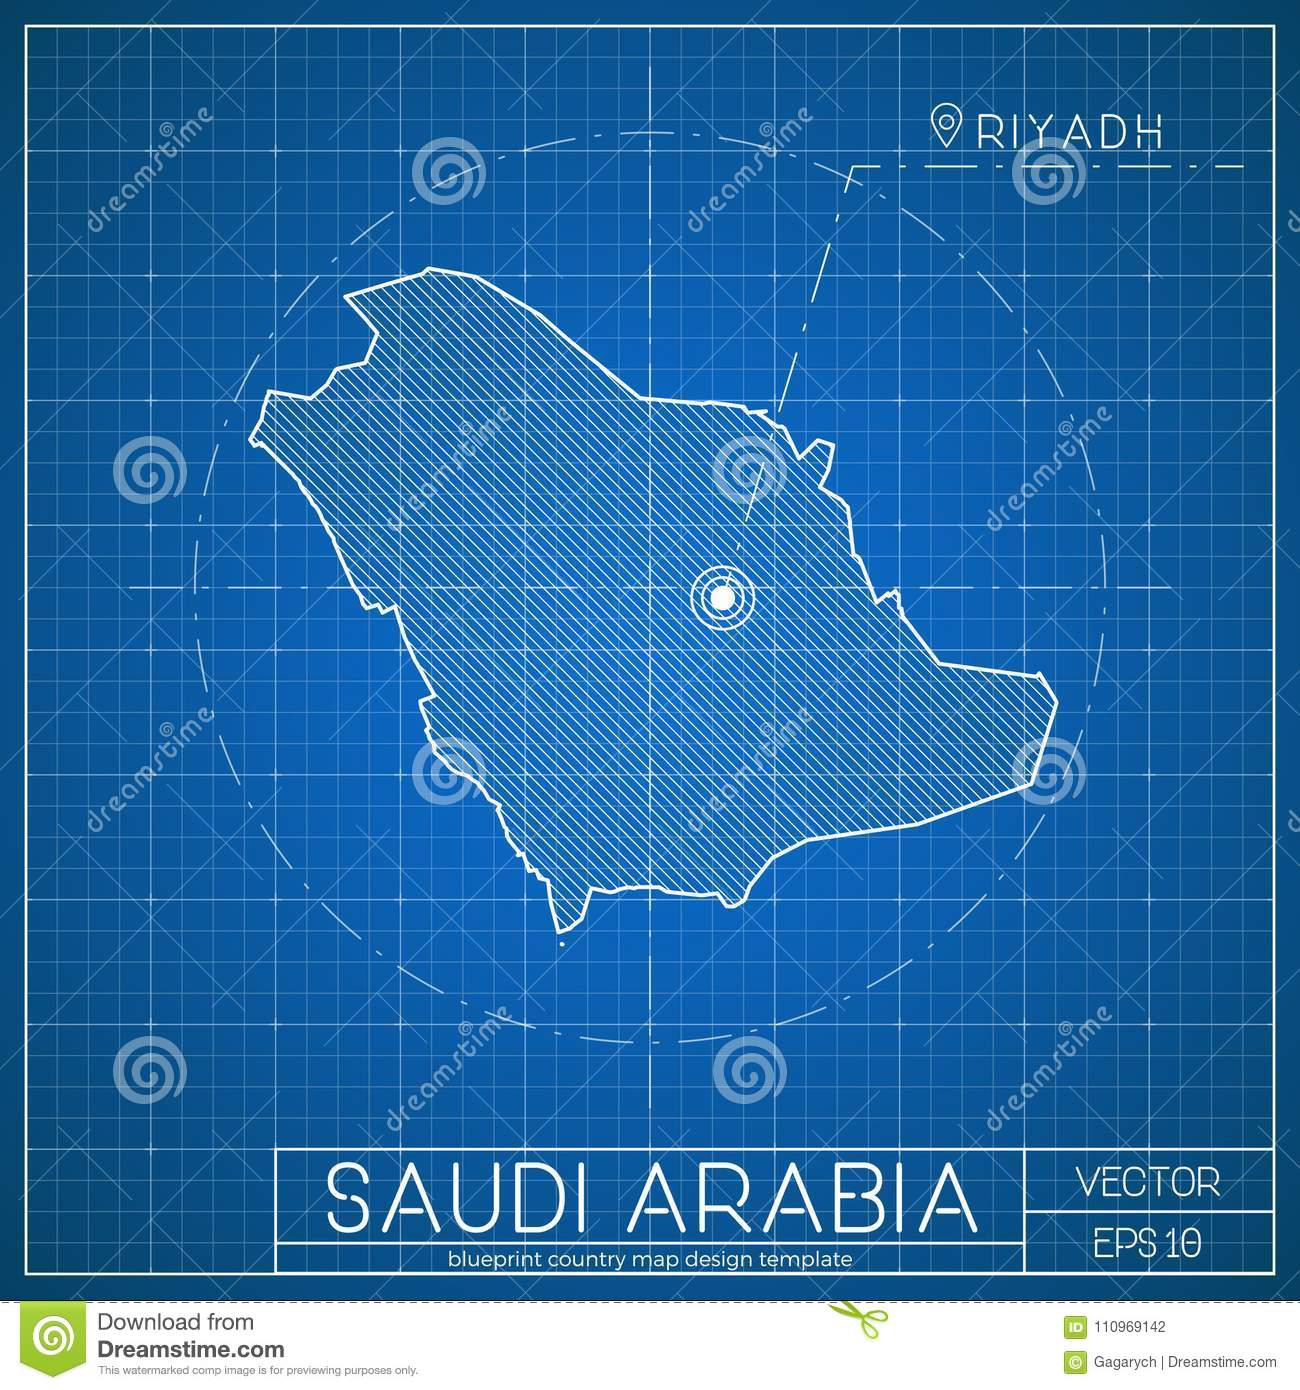 Saudi Arabia Blueprint Map Template With Capital. Stock Vector ... on map of pretoria south africa, map of mecca and medina, map of cairo egypt, map of tehran iran, map of kabul afghanistan, map of mexico city mexico, map of johannesburg south africa, map of durban south africa, map of phnom penh cambodia, map of santiago chile, map of madrid spain, map of bogota colombia, map of buenos aires argentina, map of quito ecuador, map of perth australia, map of nairobi kenya, map of wellington new zealand, map of shanghai china, map of hanoi vietnam, map of damascus syria,